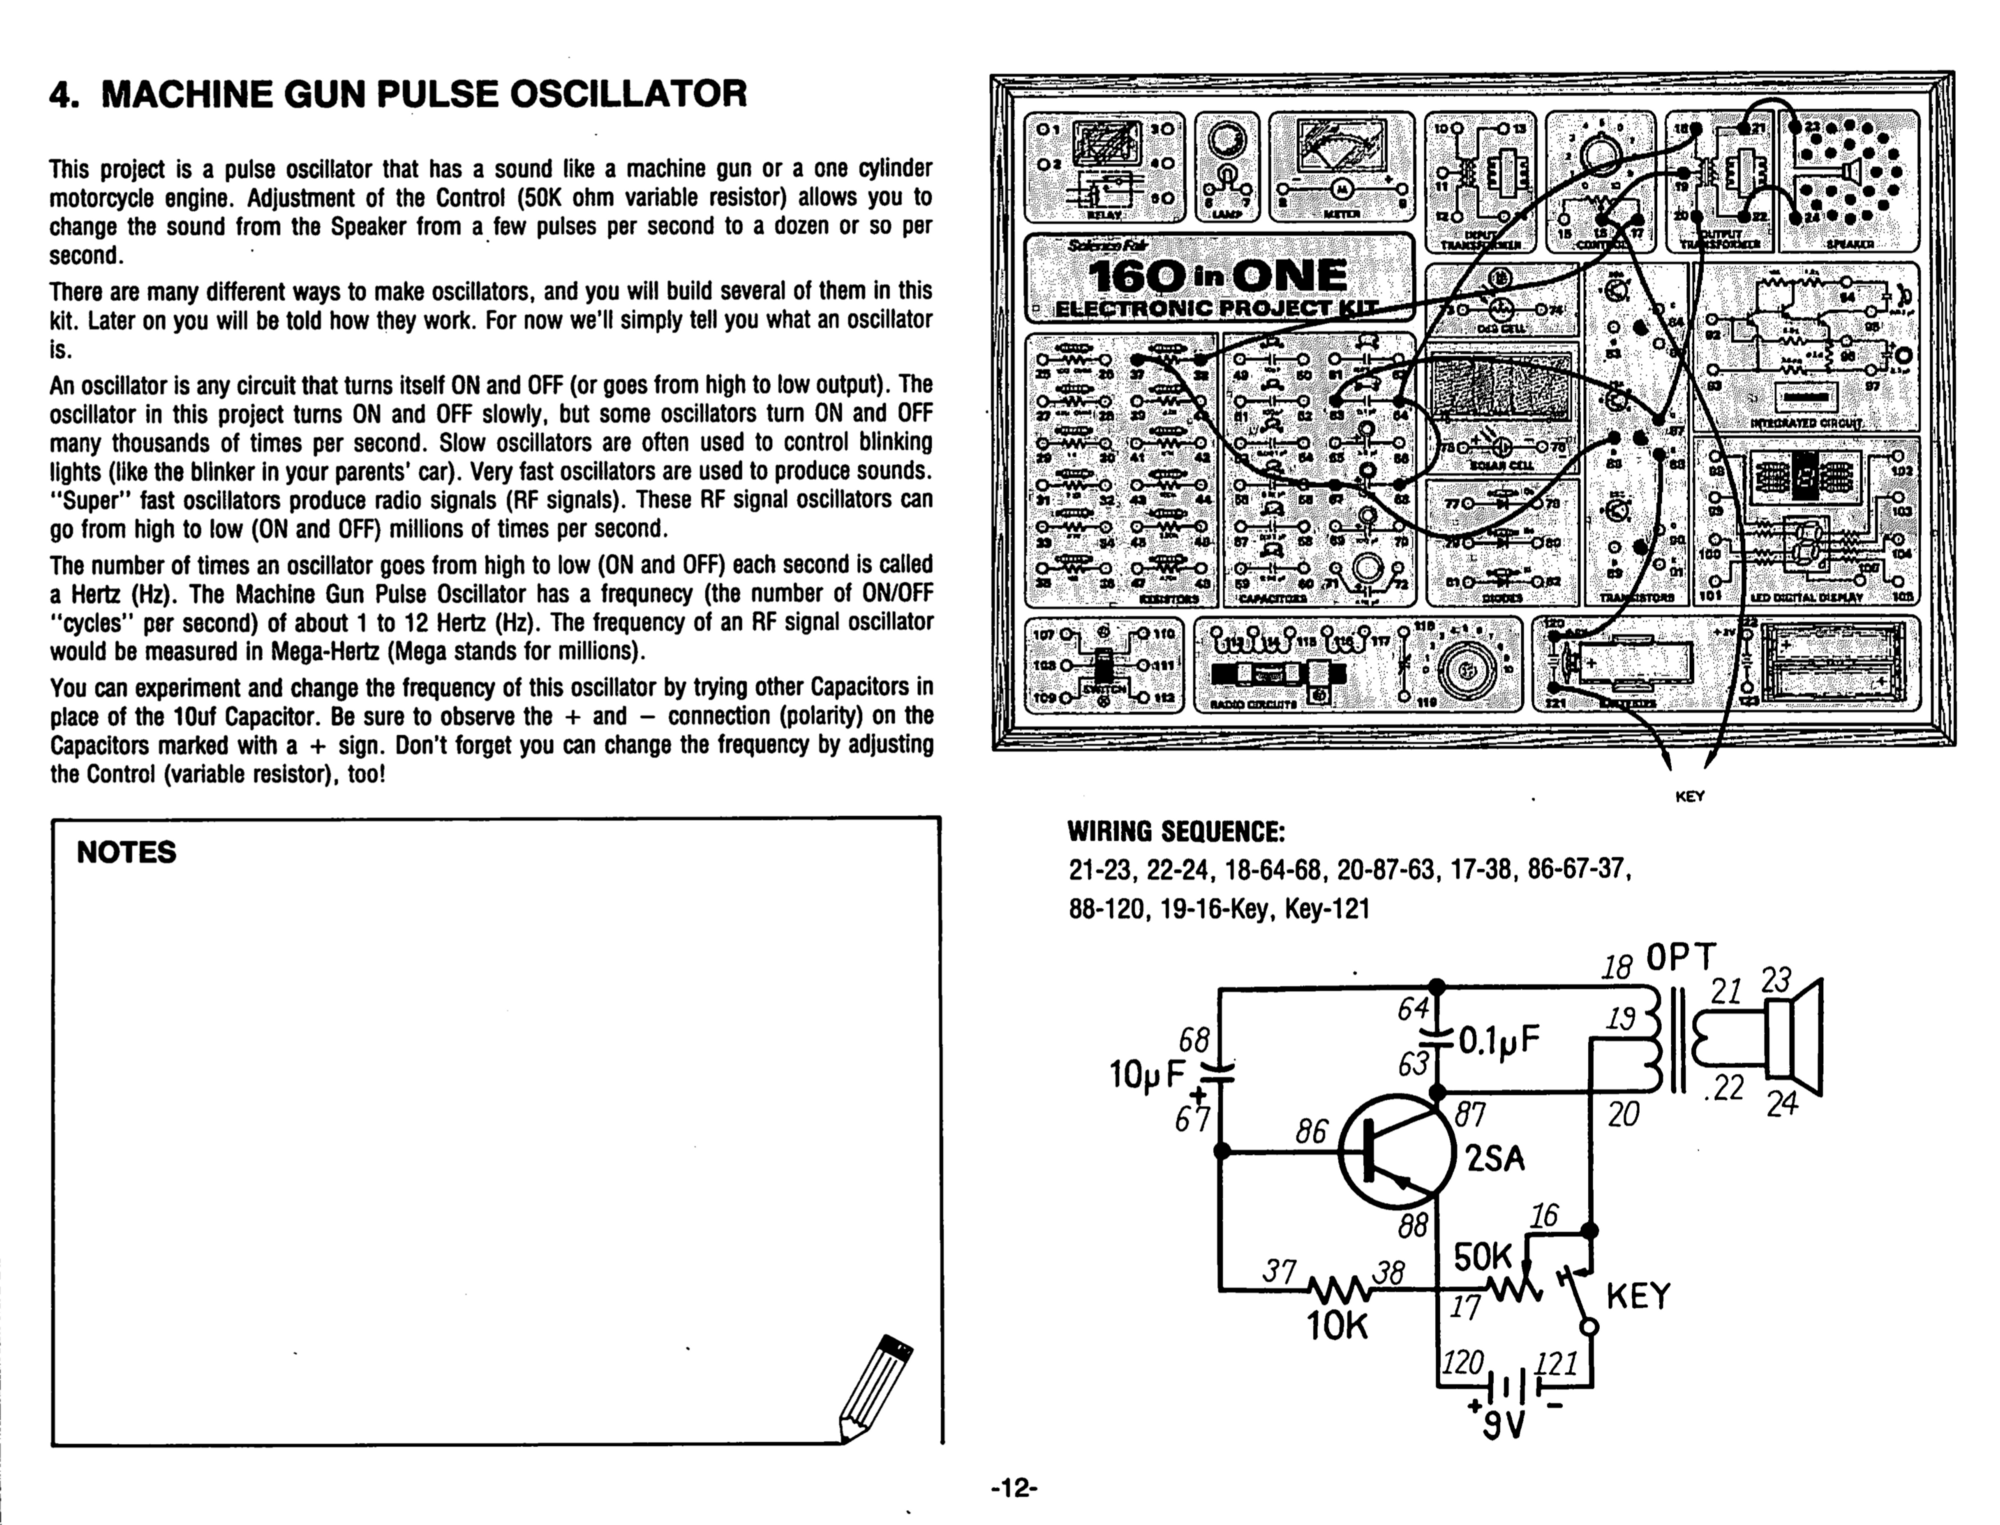 Precision Receiver Battery Low Voltage Alarm Circuit Diagrams Electronic Project Kits Hands On With A Vintage 160 In 1 Now That The Power Is Connected Working Used Fresh 9v I Proceeded To Wire Up First Starting 4 Machine Gun Pulse Oscillator